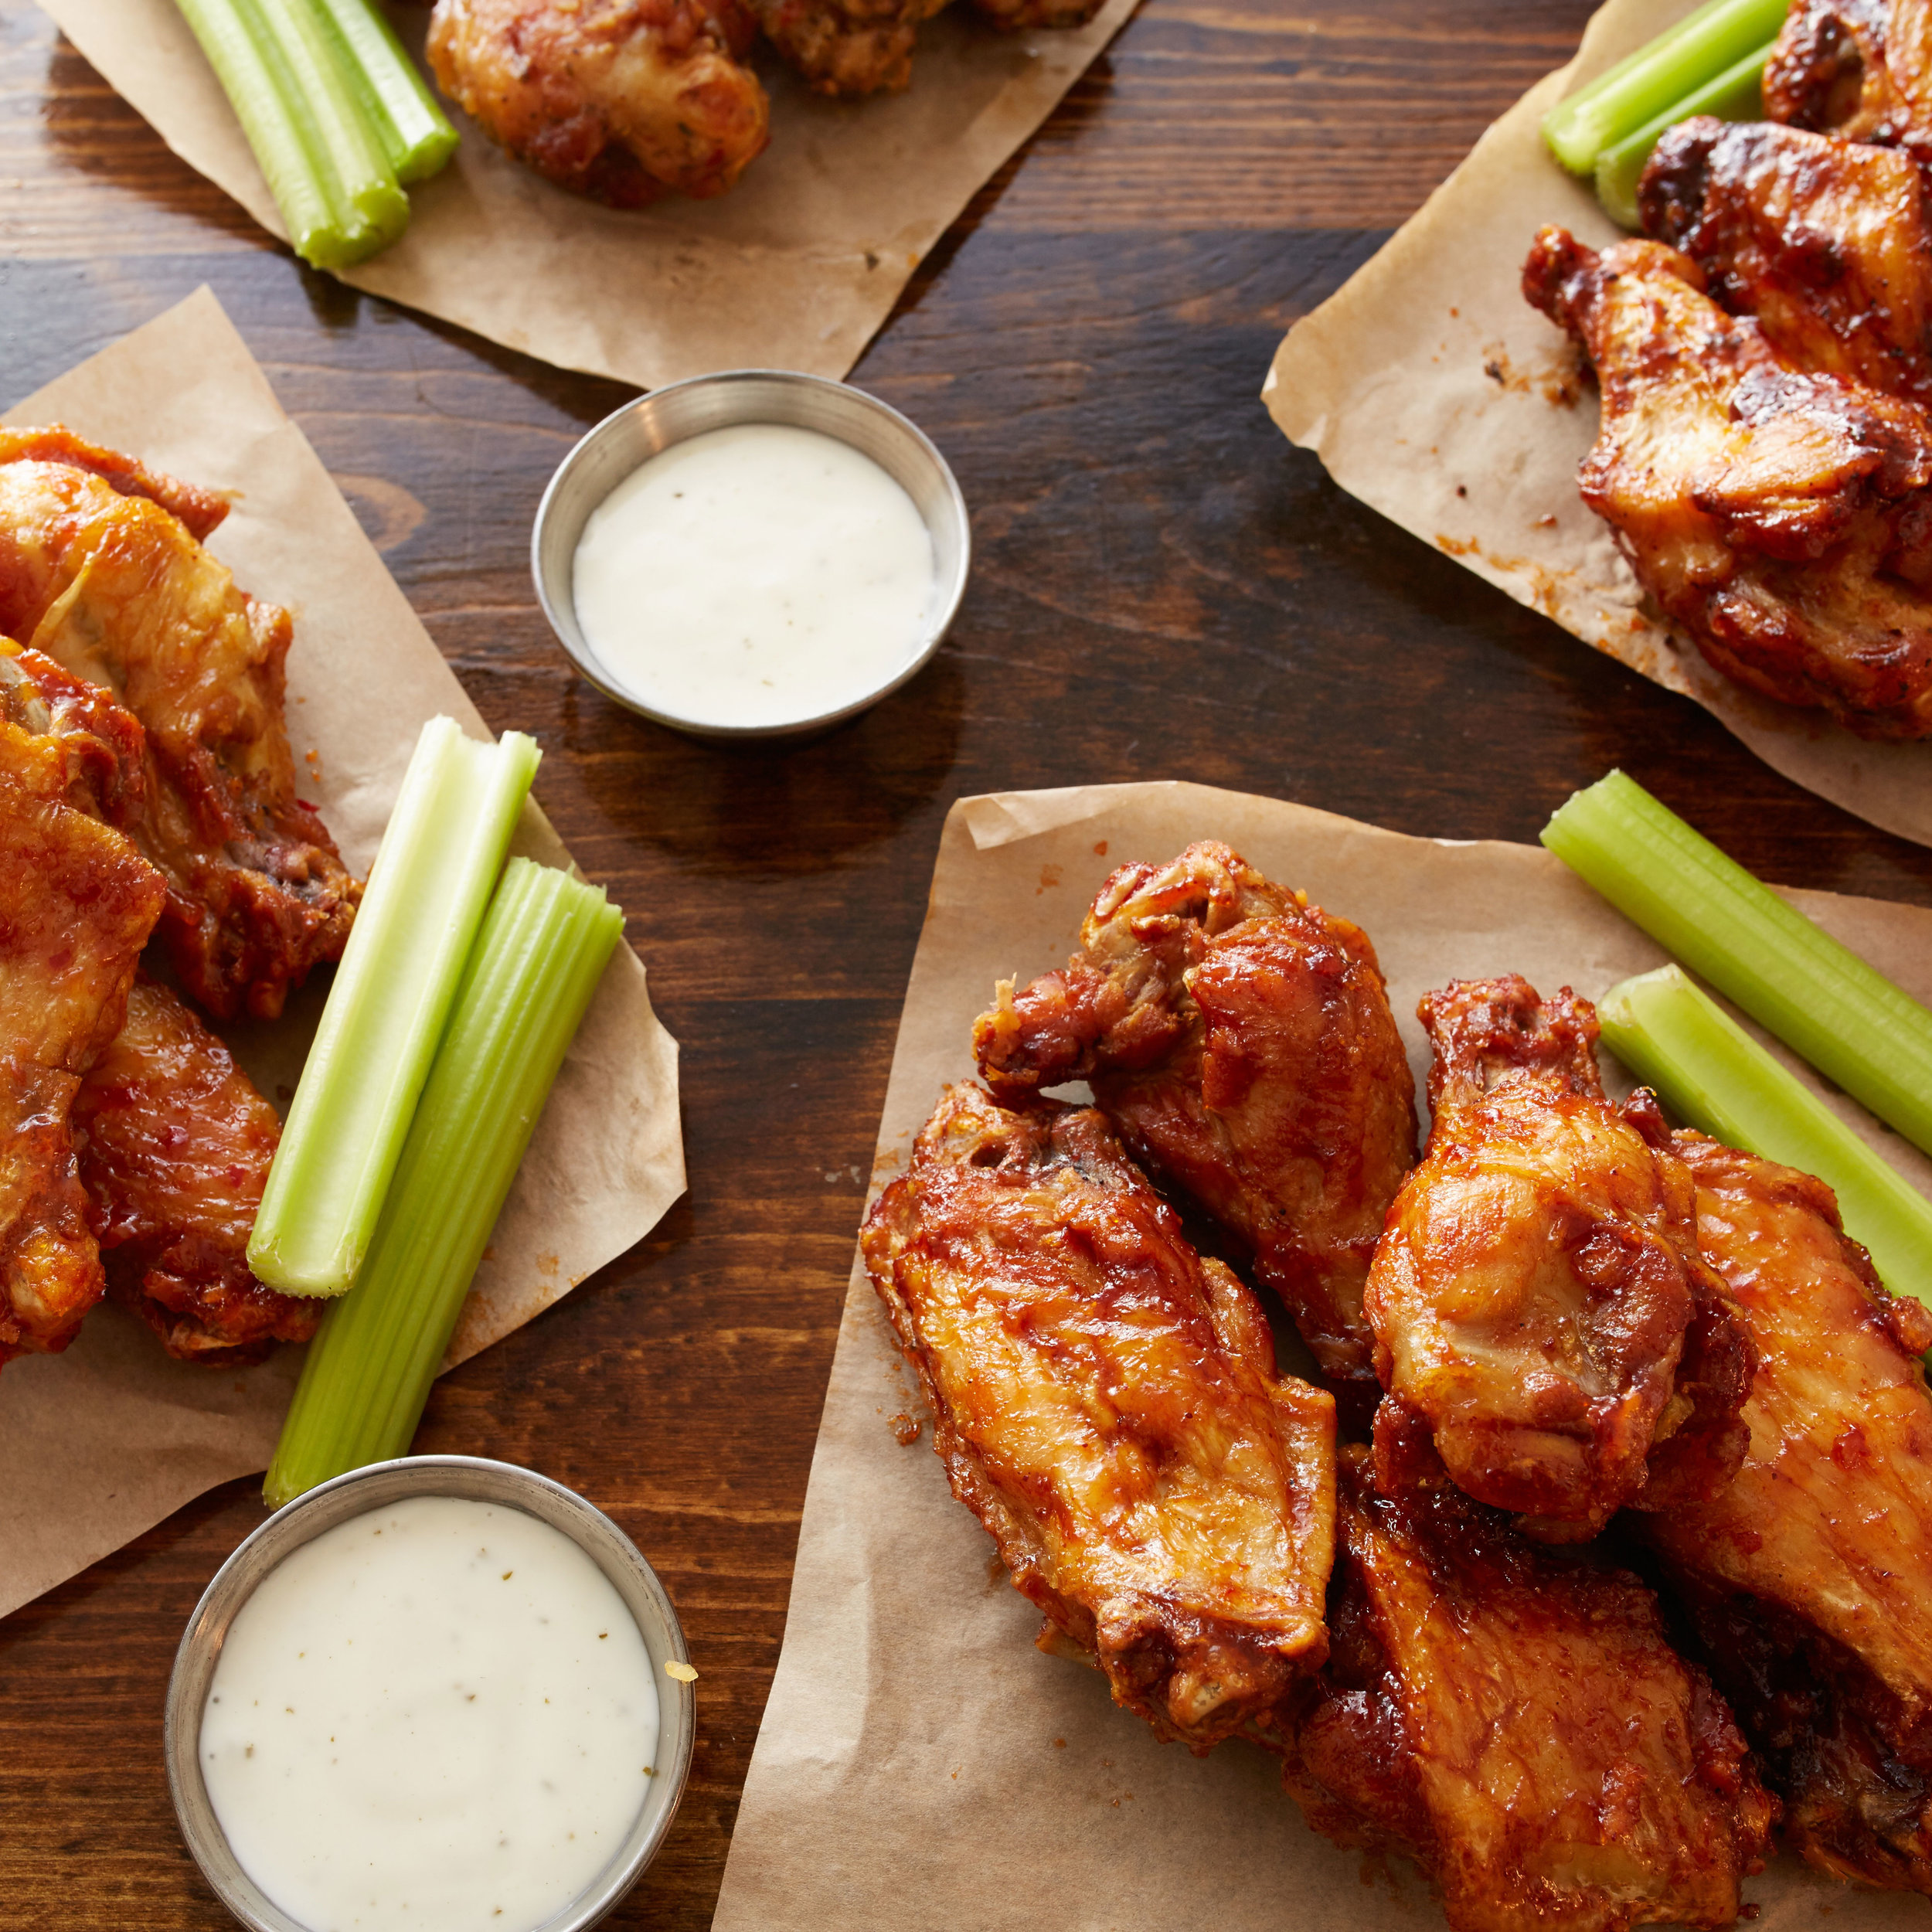 charleston-inside-out-rutledge-cab-super-bowl-wings.jpg